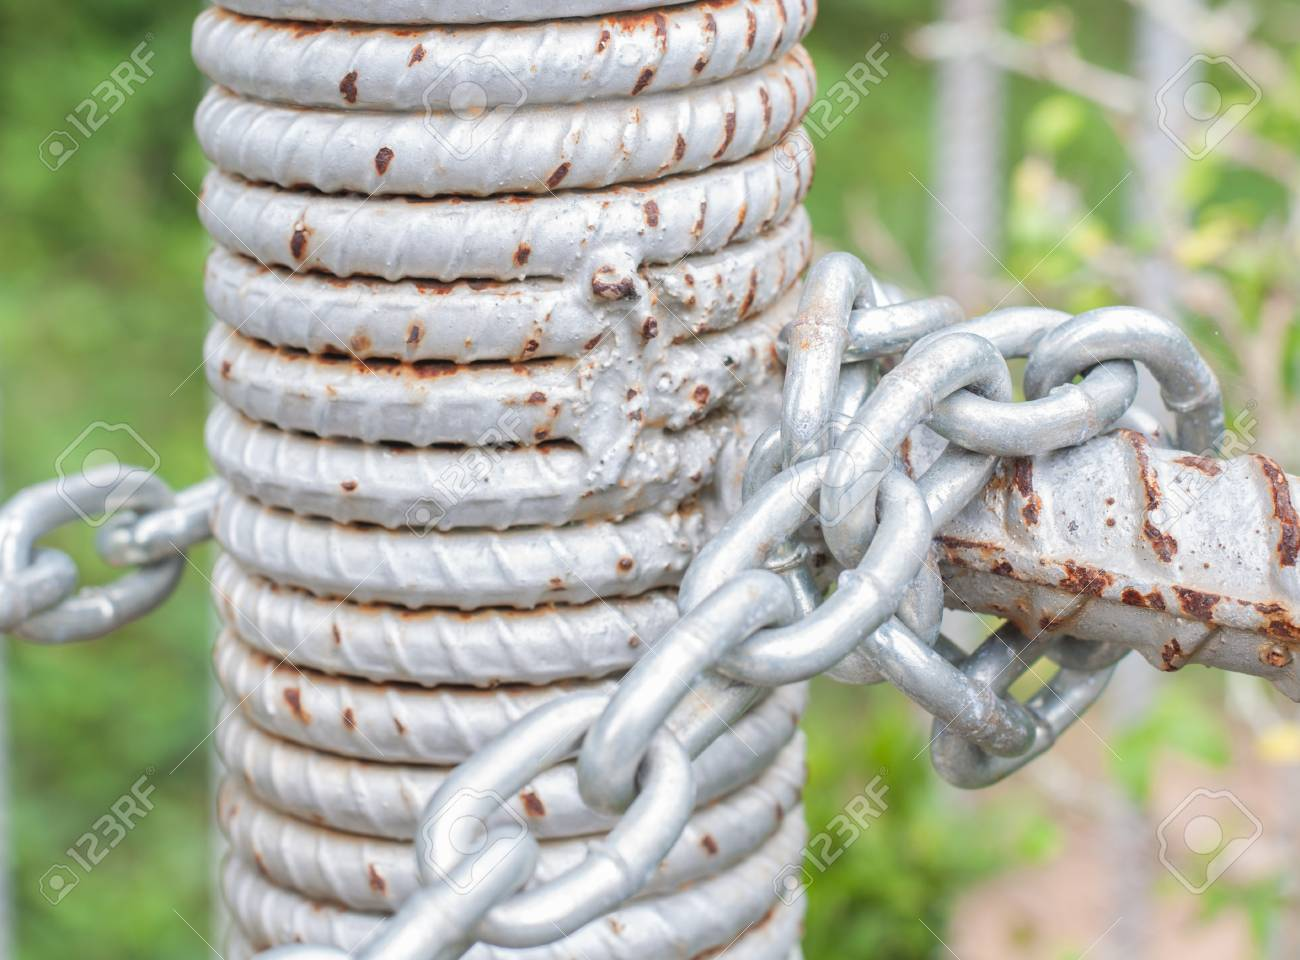 The chain linked fence home to safety Stock Photo - 15802167